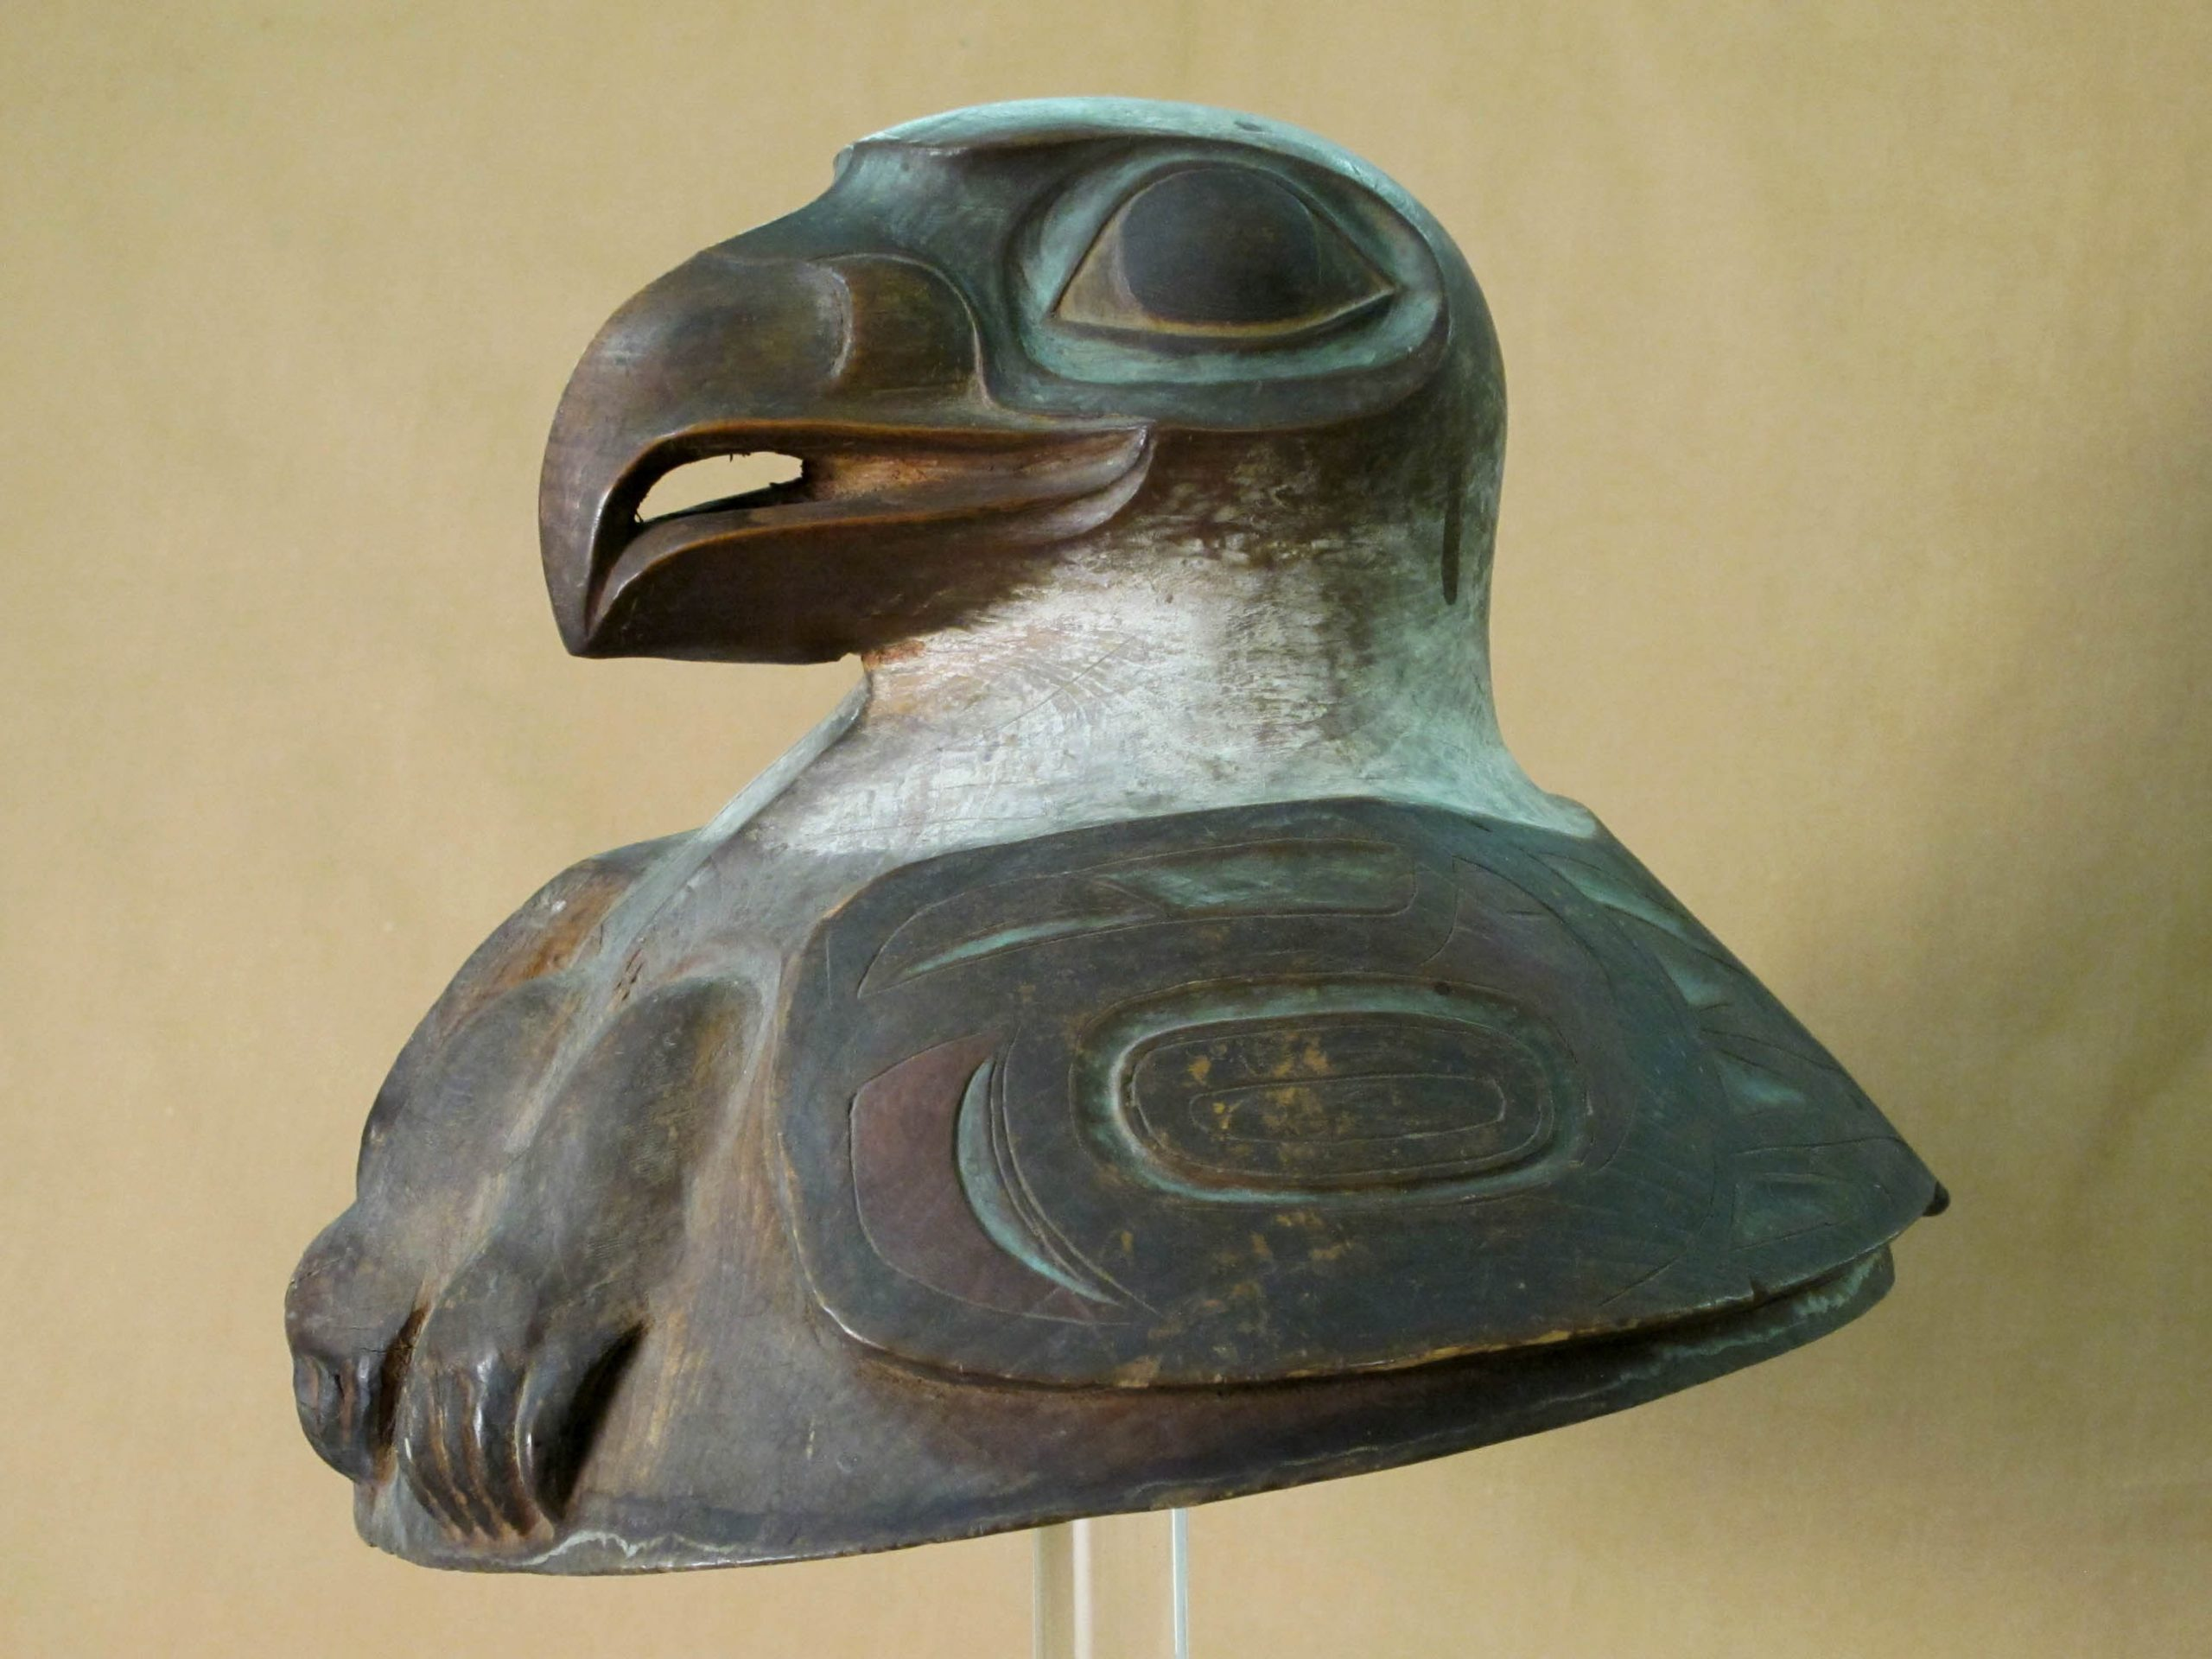 A Tlingit war helmet that includes the carved head of a beaked animal.